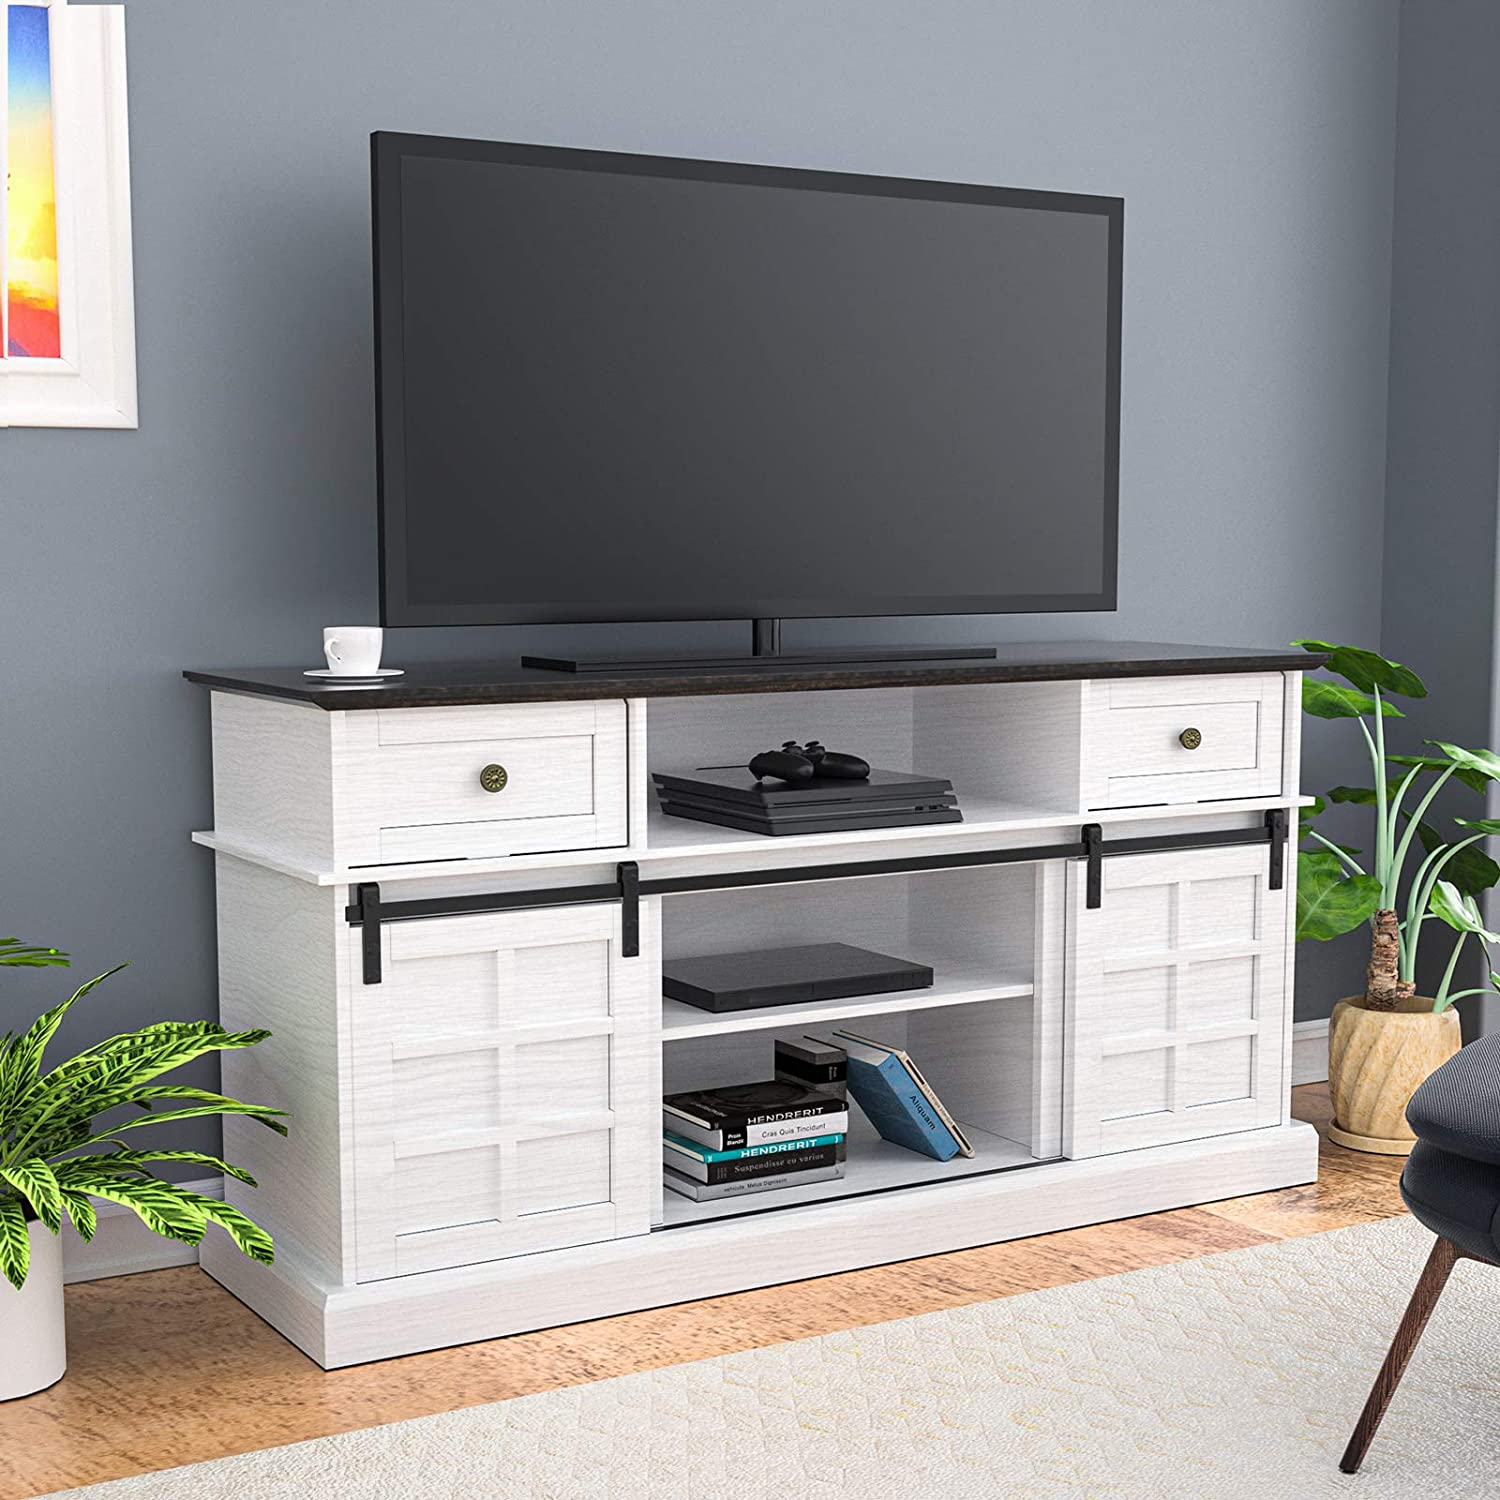 LGHM Entertainment Center, TV Stand for 65 inch TVs, 58